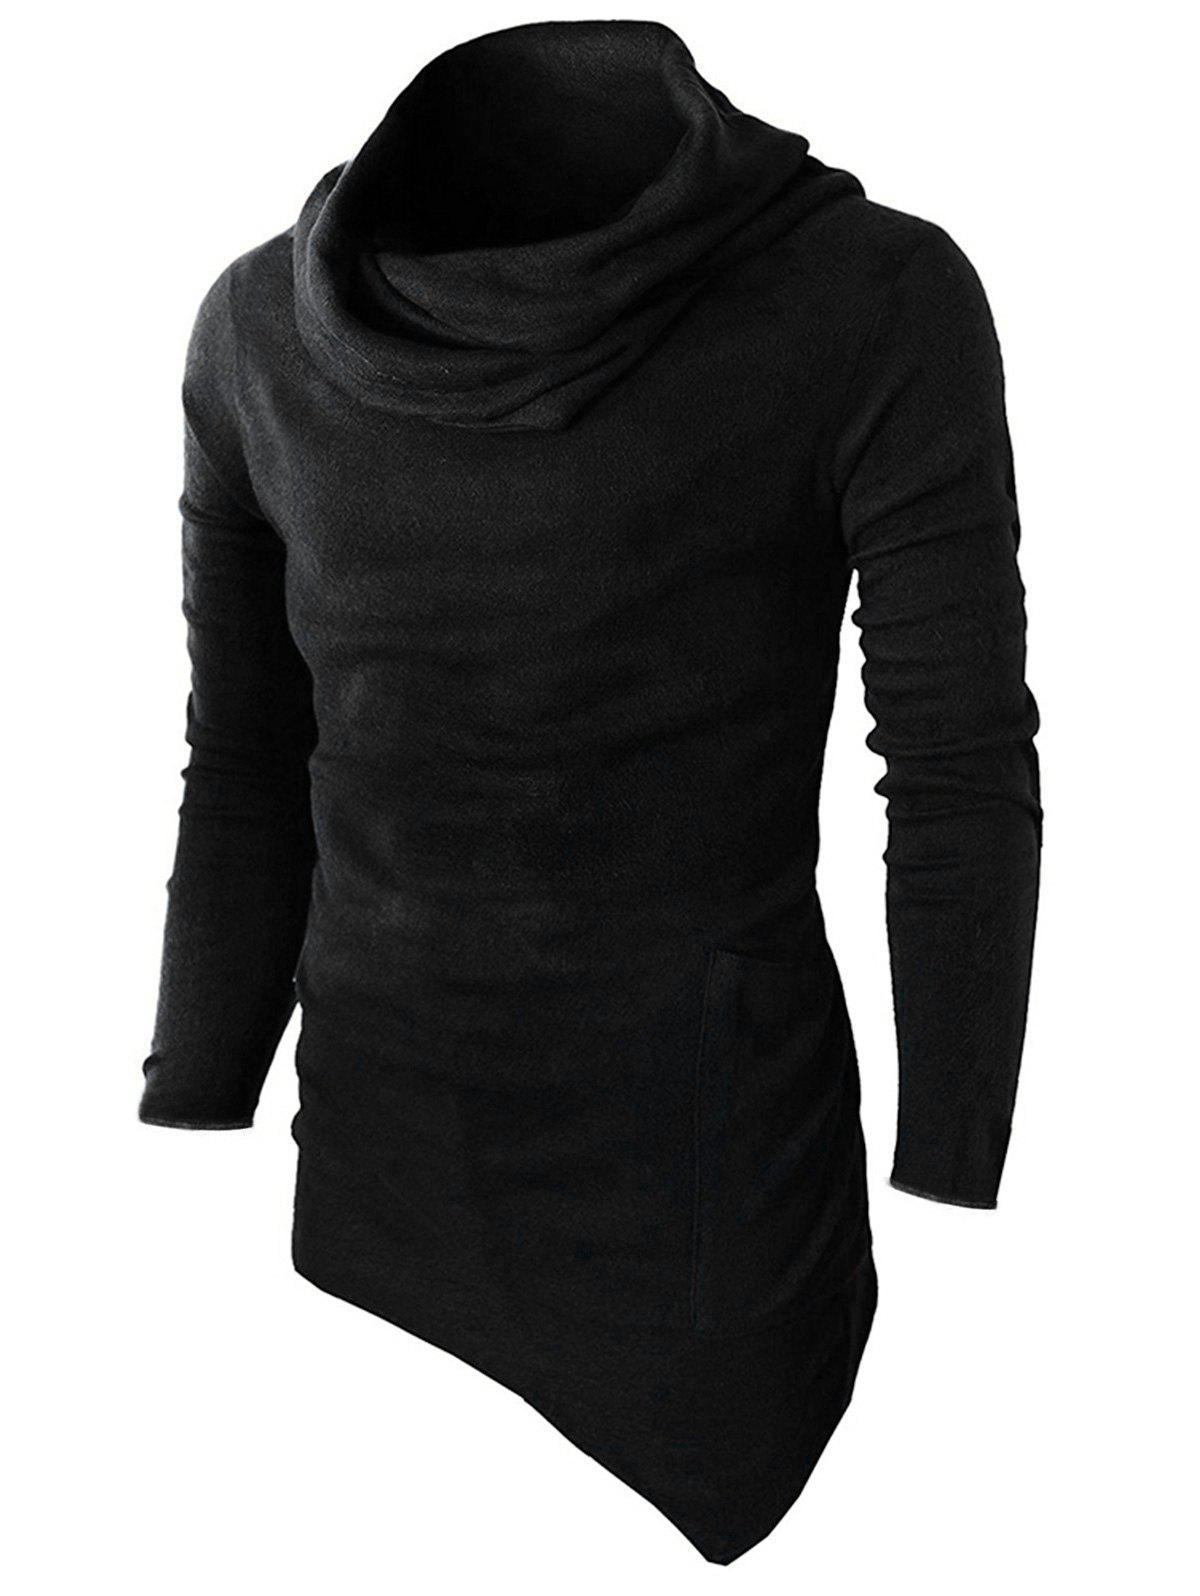 Discount Cowl Neck Asymmetric Sweater with Side Pocket